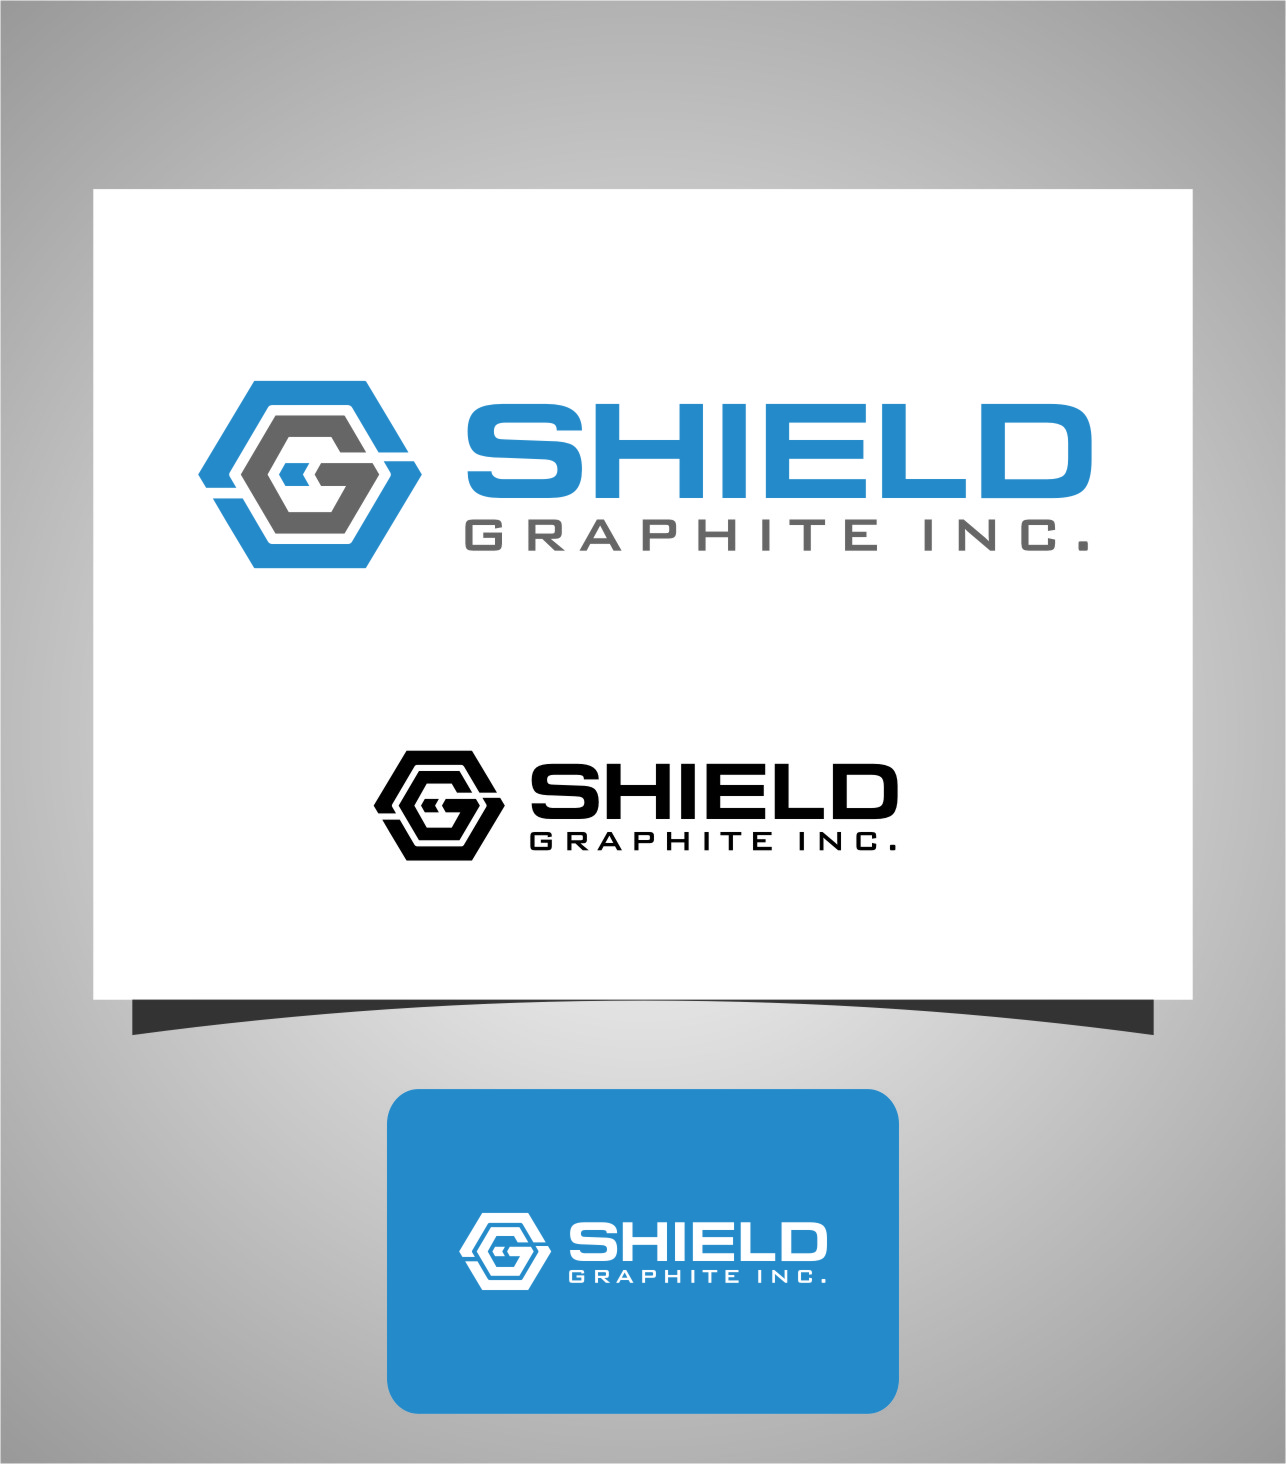 Logo Design by Ngepet_art - Entry No. 155 in the Logo Design Contest Imaginative Logo Design for Shield Graphite Inc..